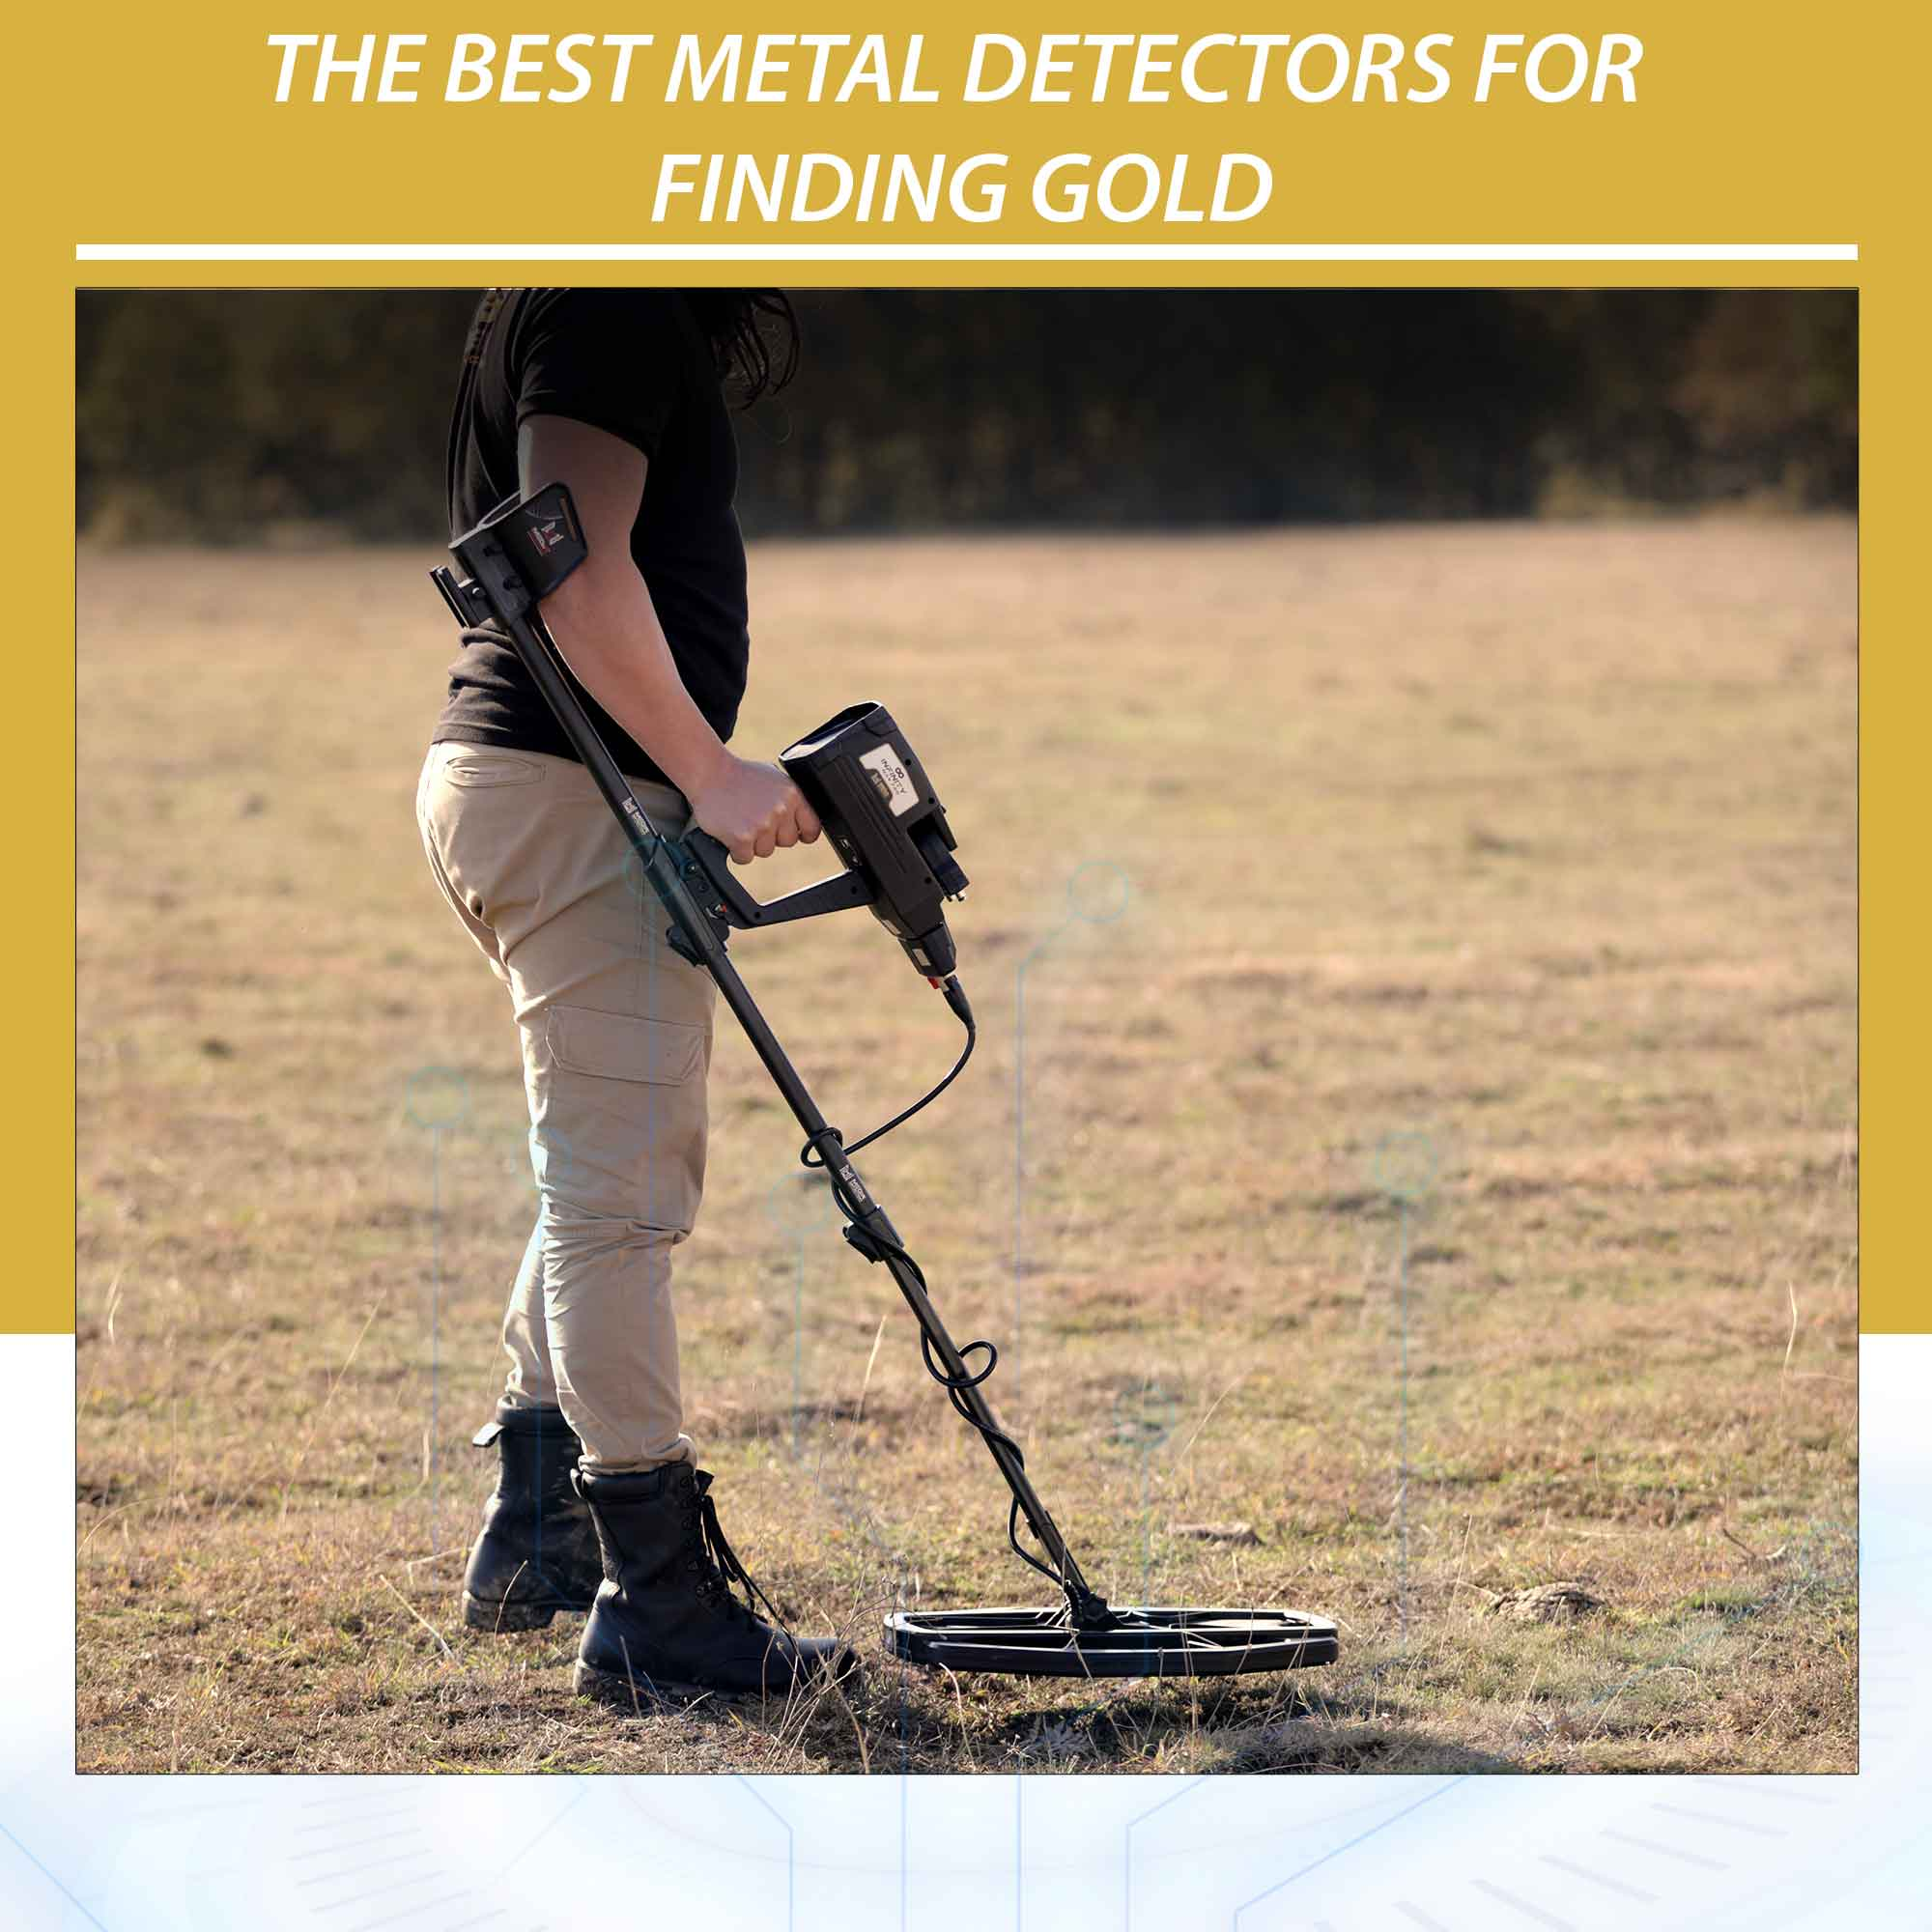 The best metal detectors for finding gold